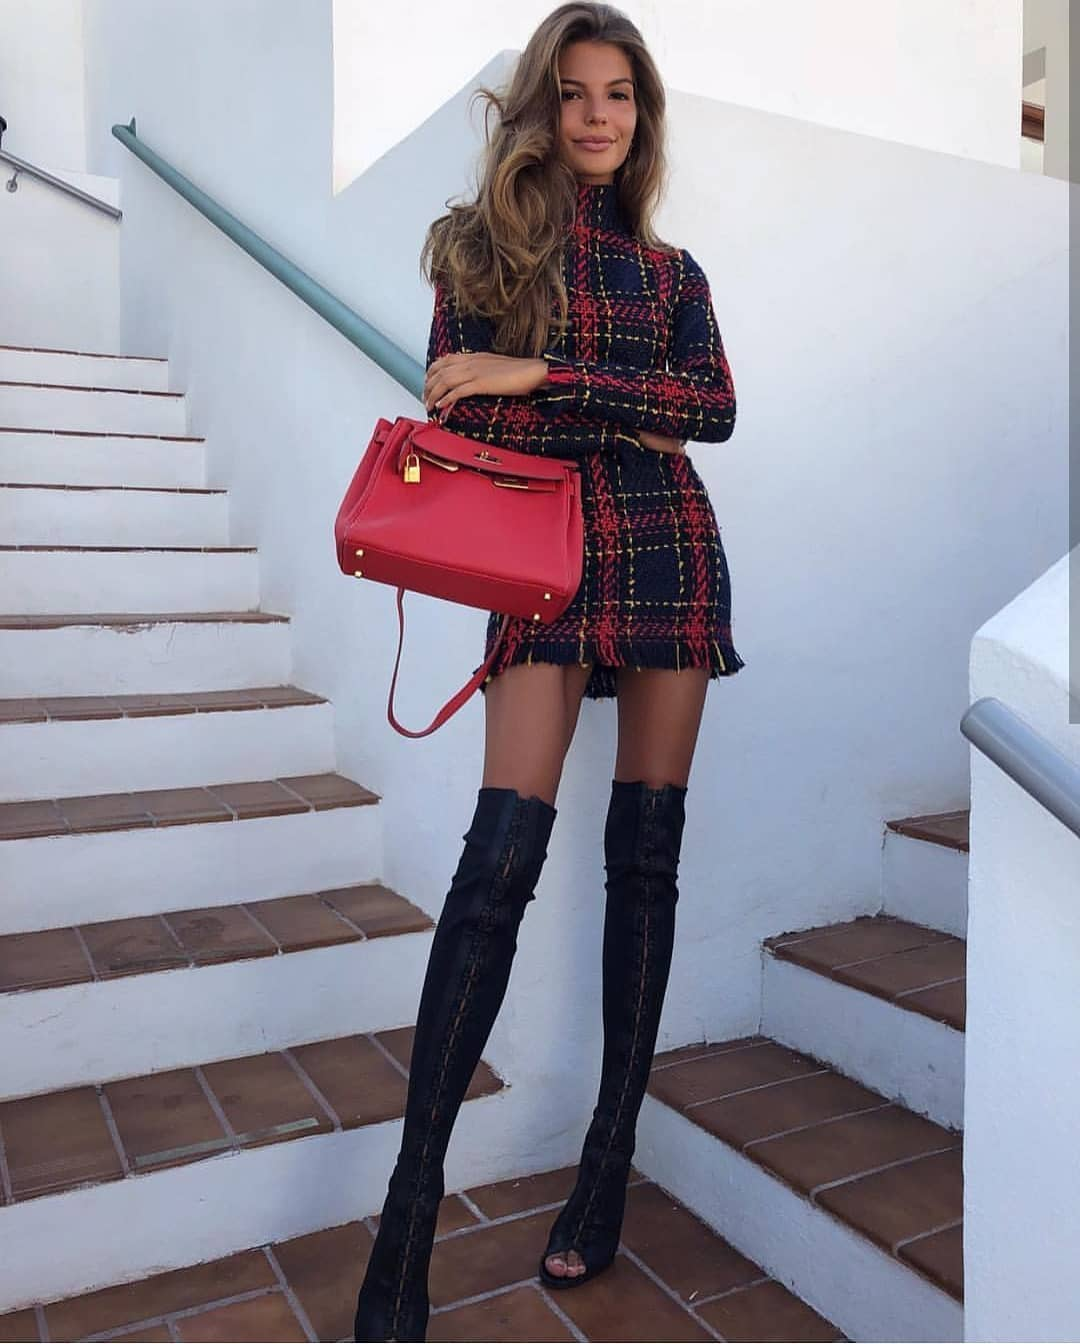 Tartan Dress With Long Sleeves And OTK Boots For Spring 2019